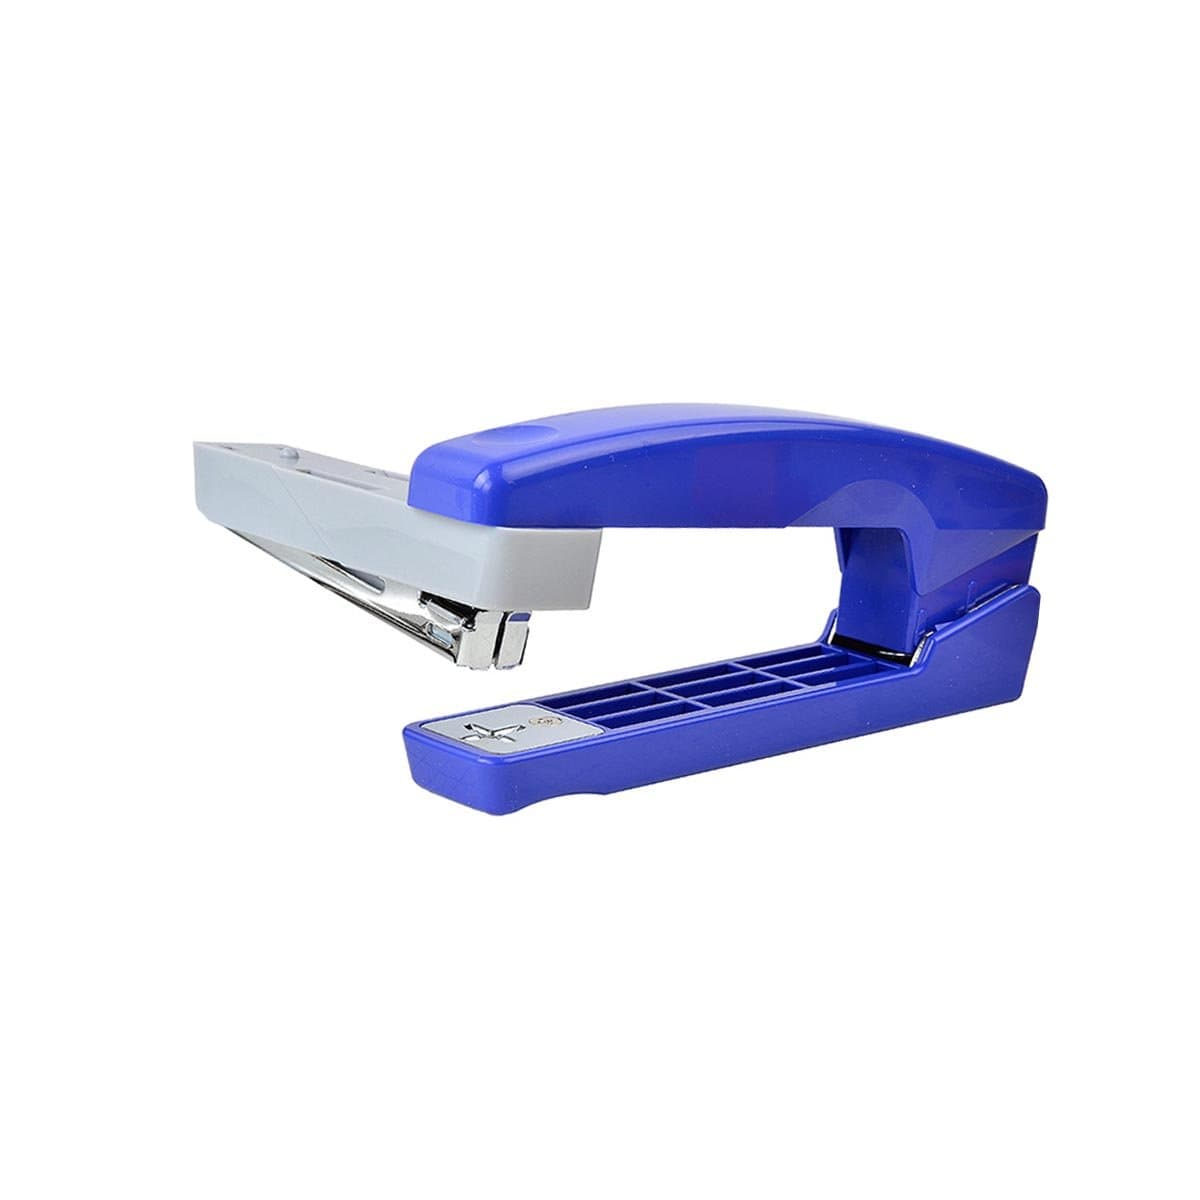 Max Stapler HD-10V Blue